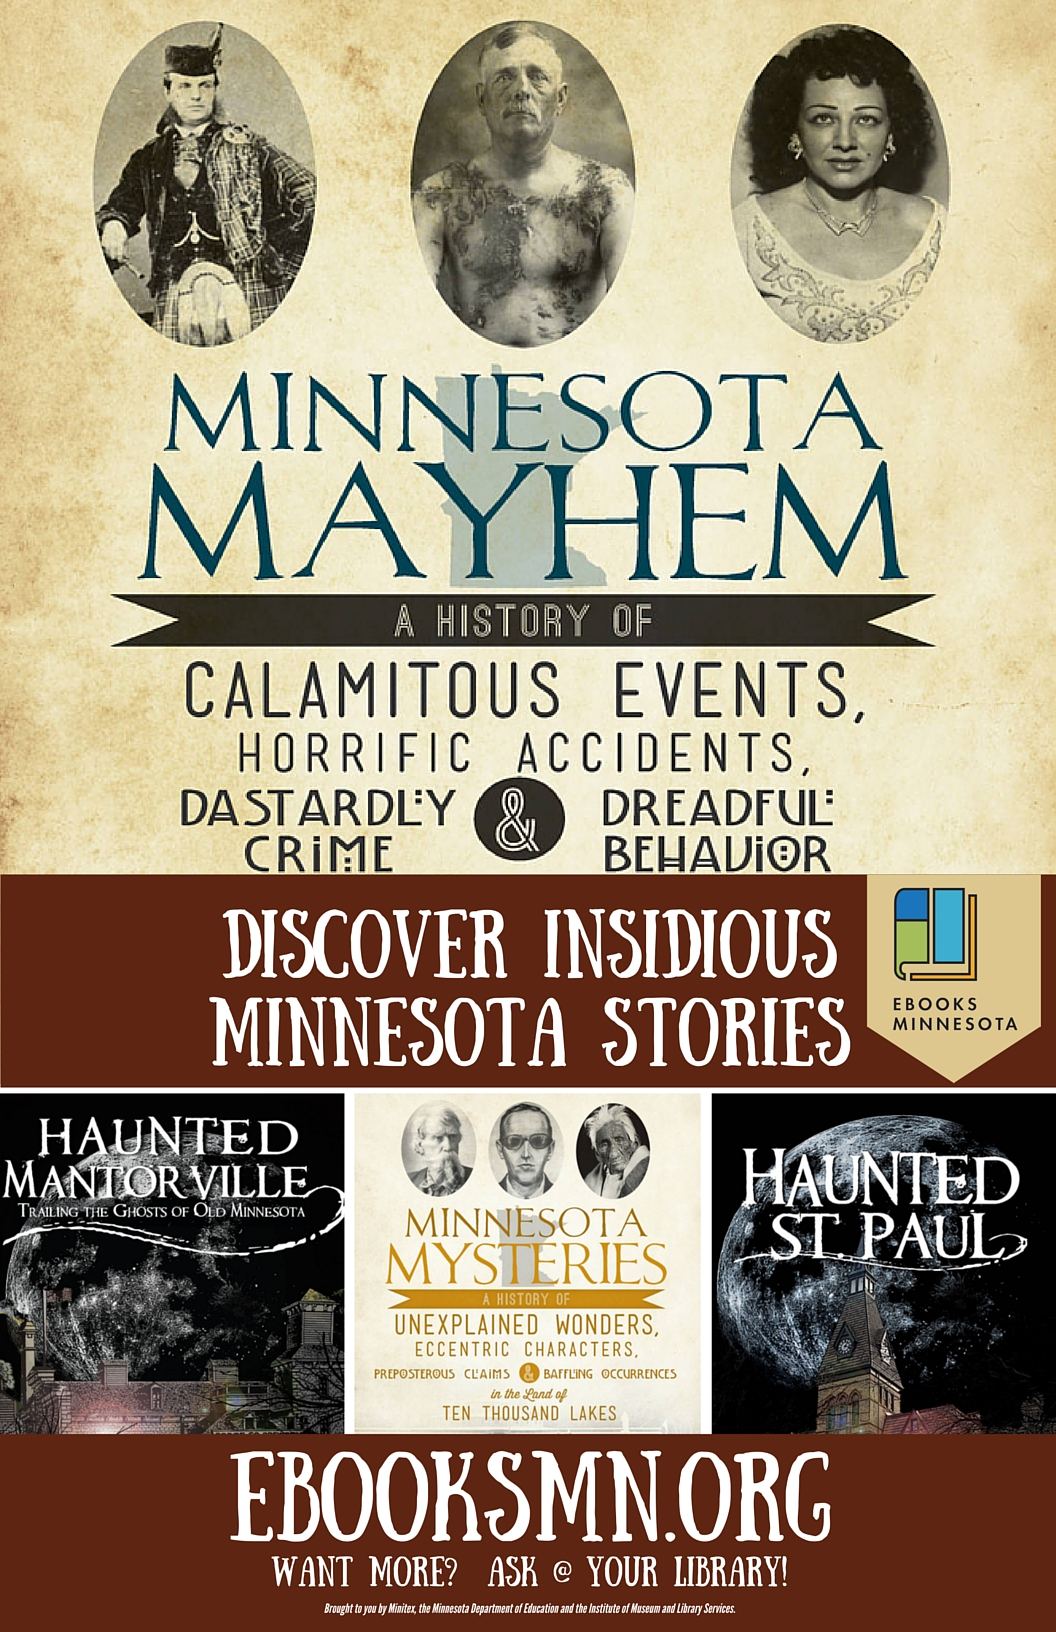 Discover Insidious Minnesota Stories